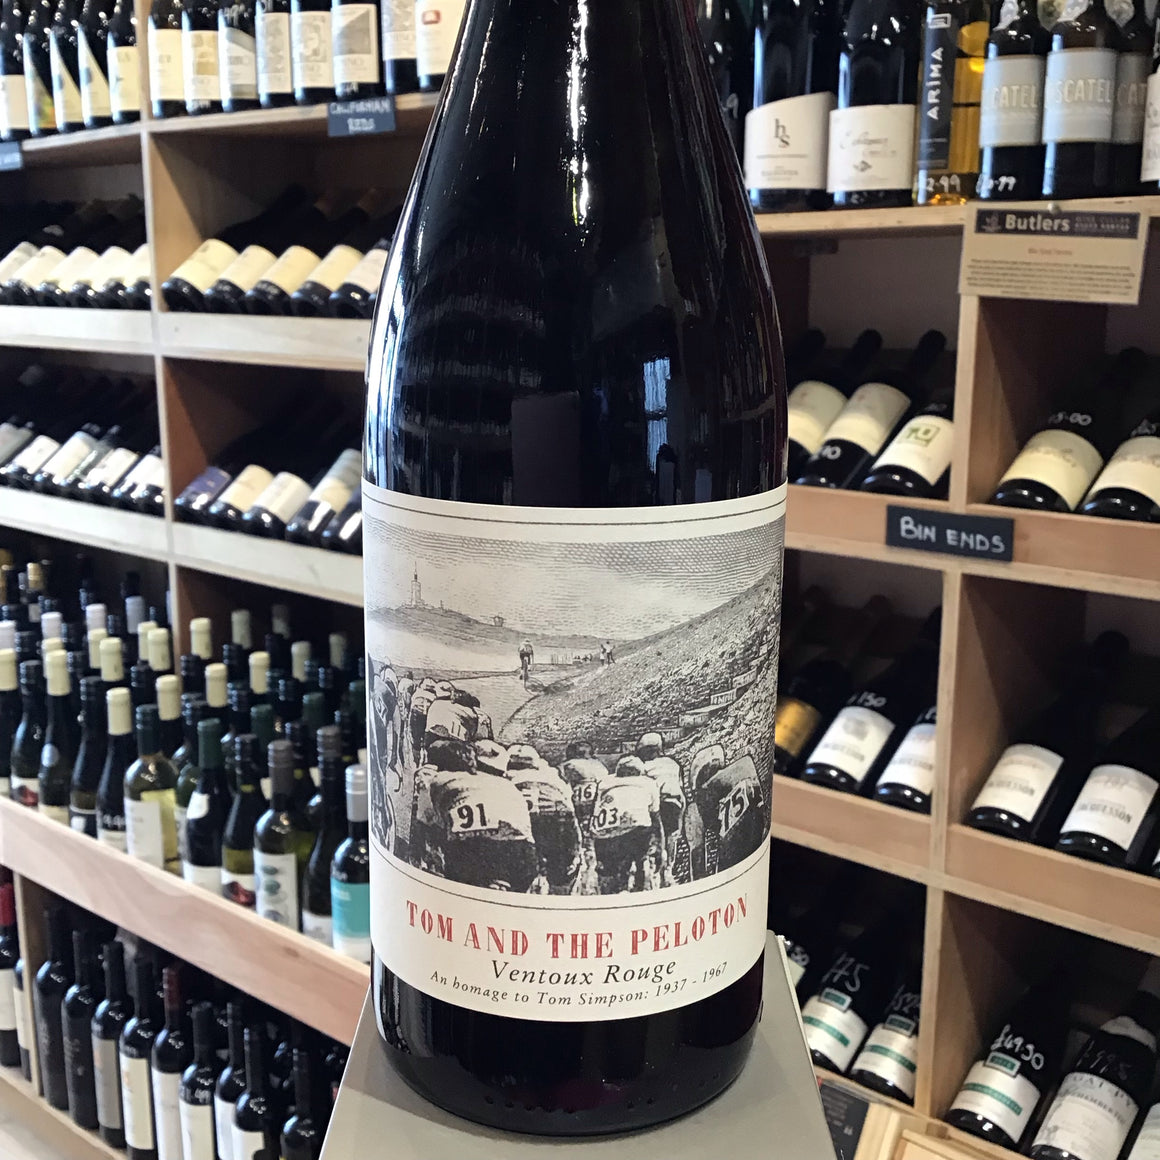 Tom and The Peloton, Cote du Ventoux Rouge 2015 - Butlers Wine Cellar Brighton